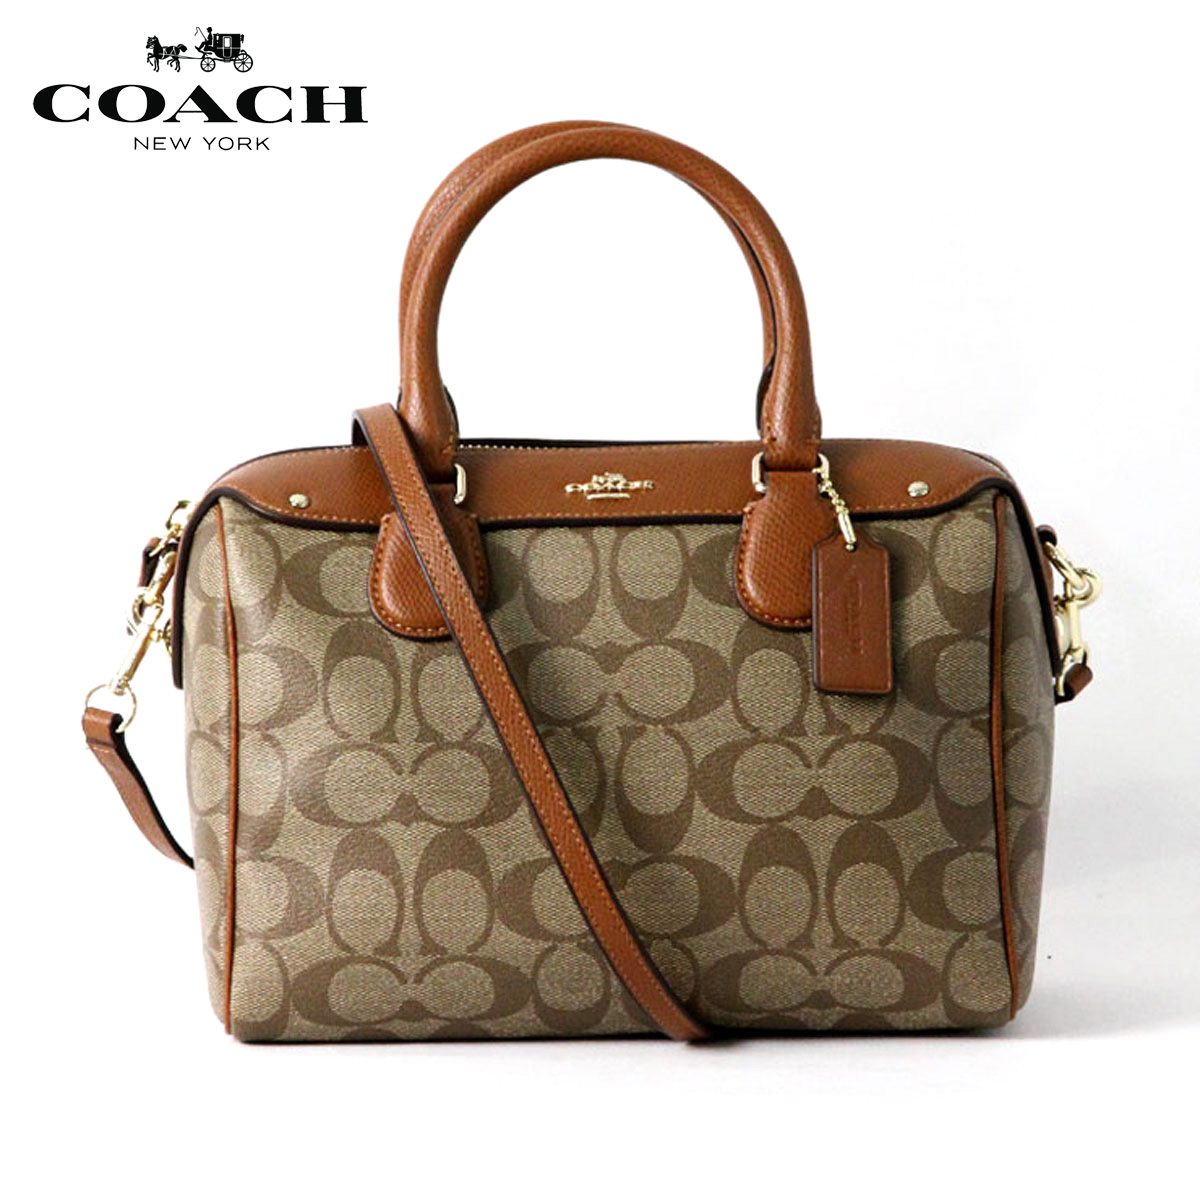 606f6dc025b Rakuten Ichiba shop MIXON  Coach COACH genuine ladies bag SATCHEL F36702  IMBDX   Rakuten Global Market